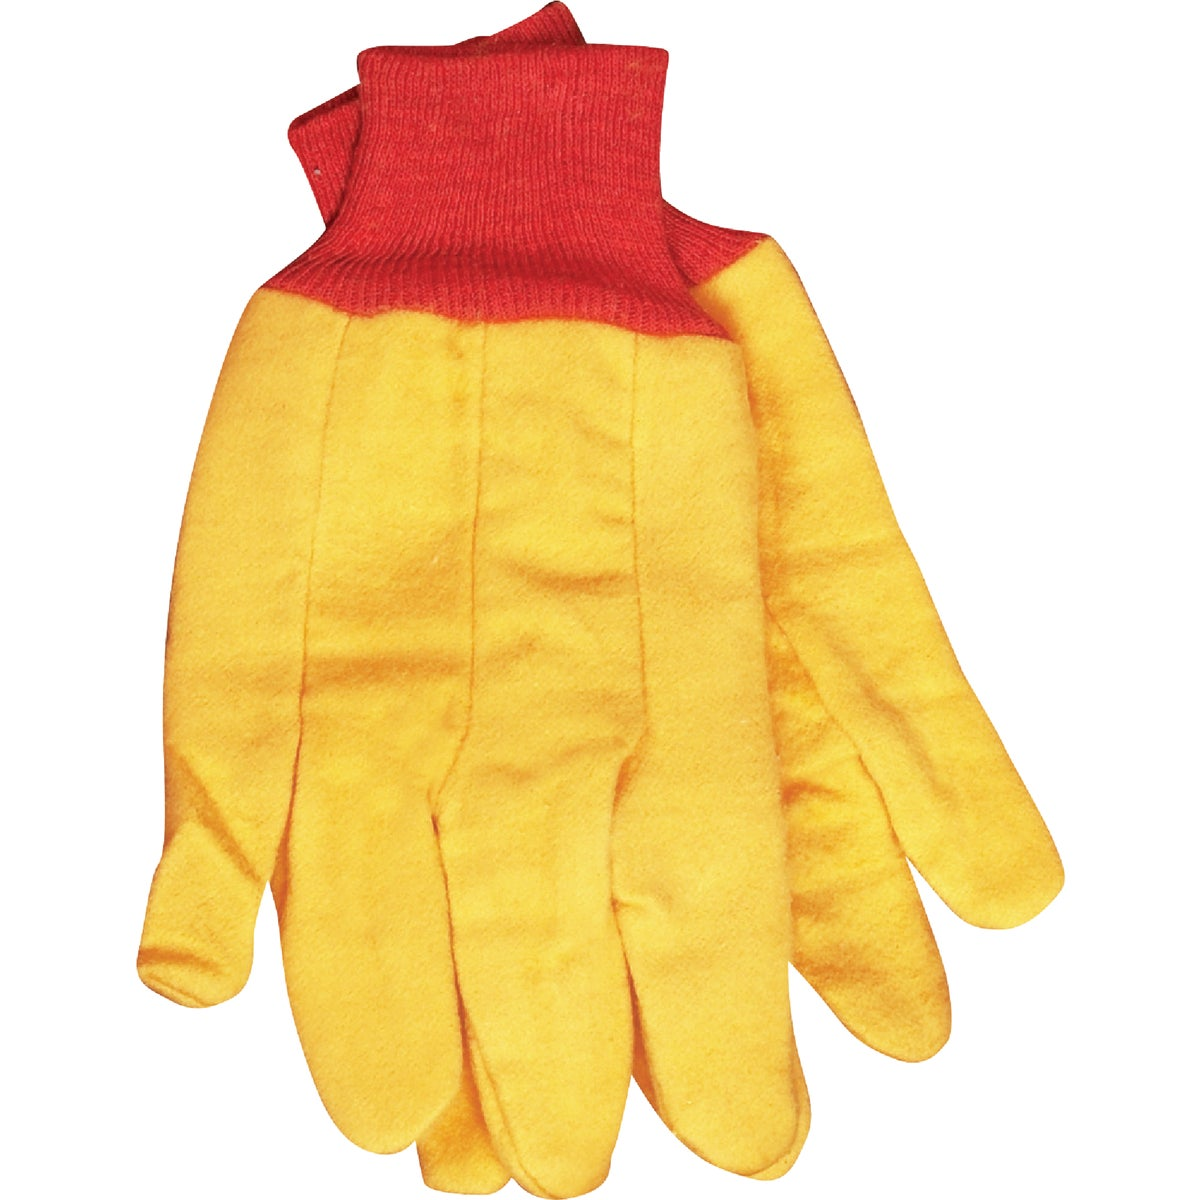 12PK LRG YEL CHORE GLOVE - 705650 by Do it Best